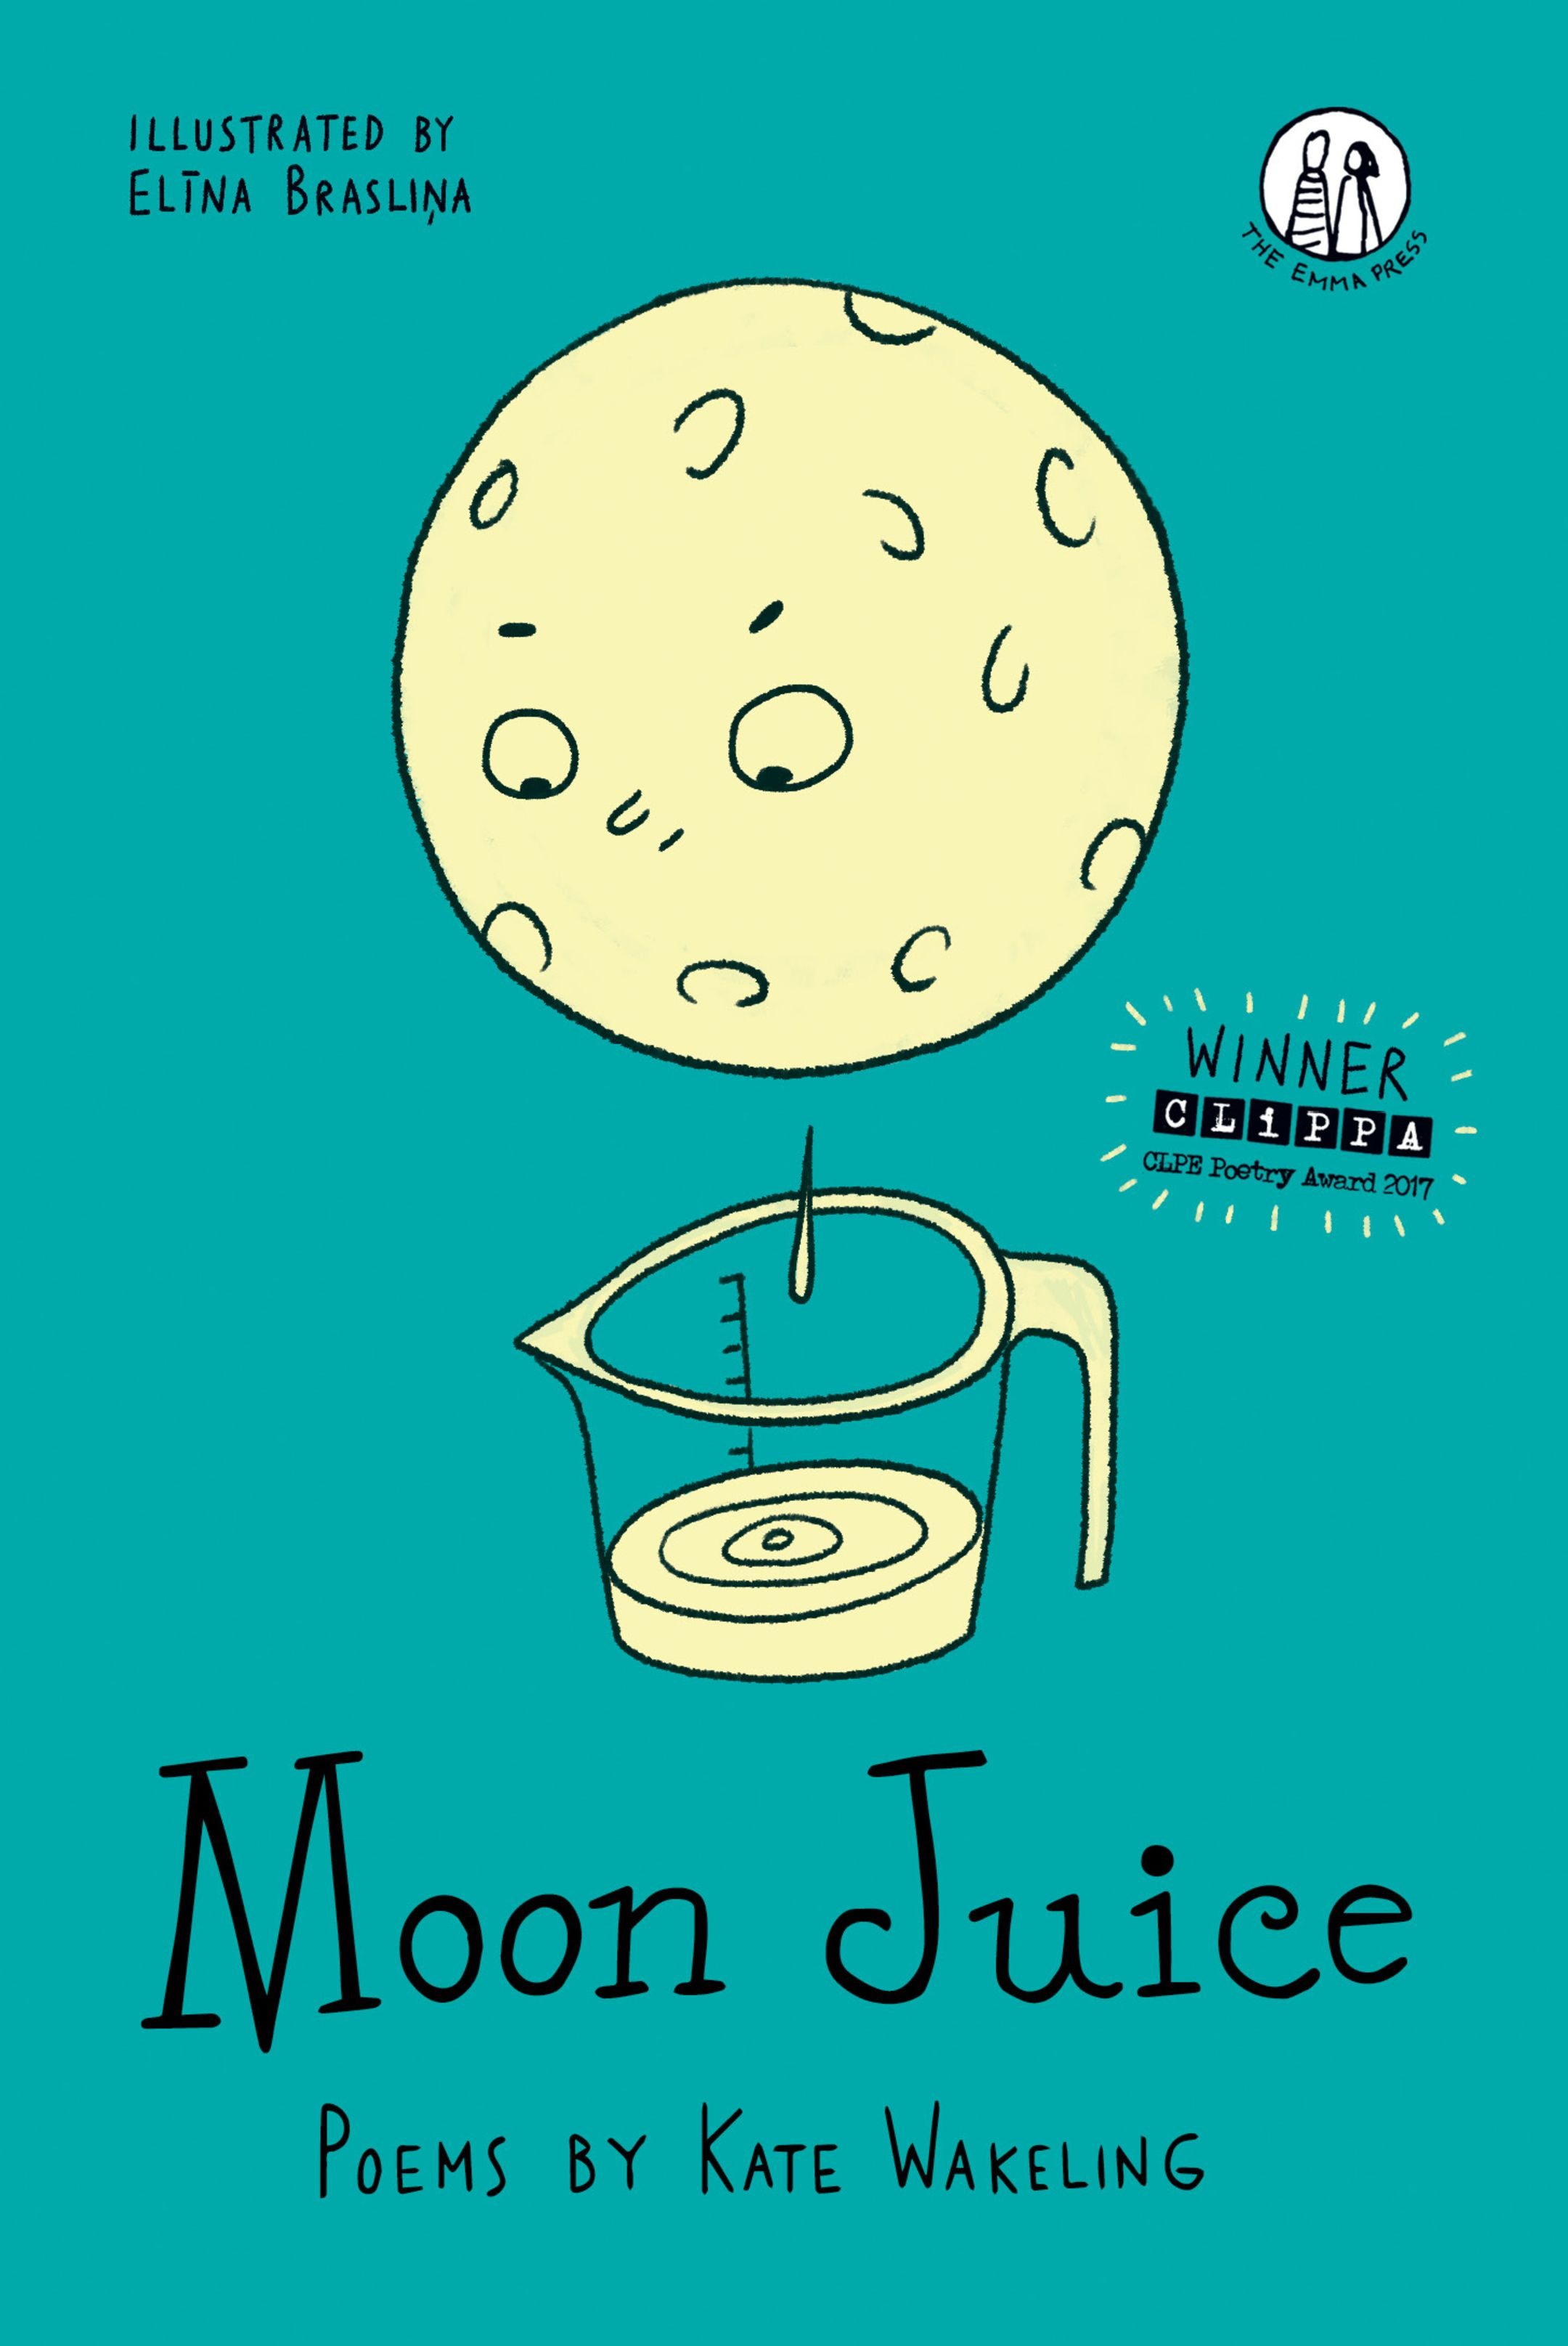 An image of the book cover for Moon Juice, by Kate Wakeling